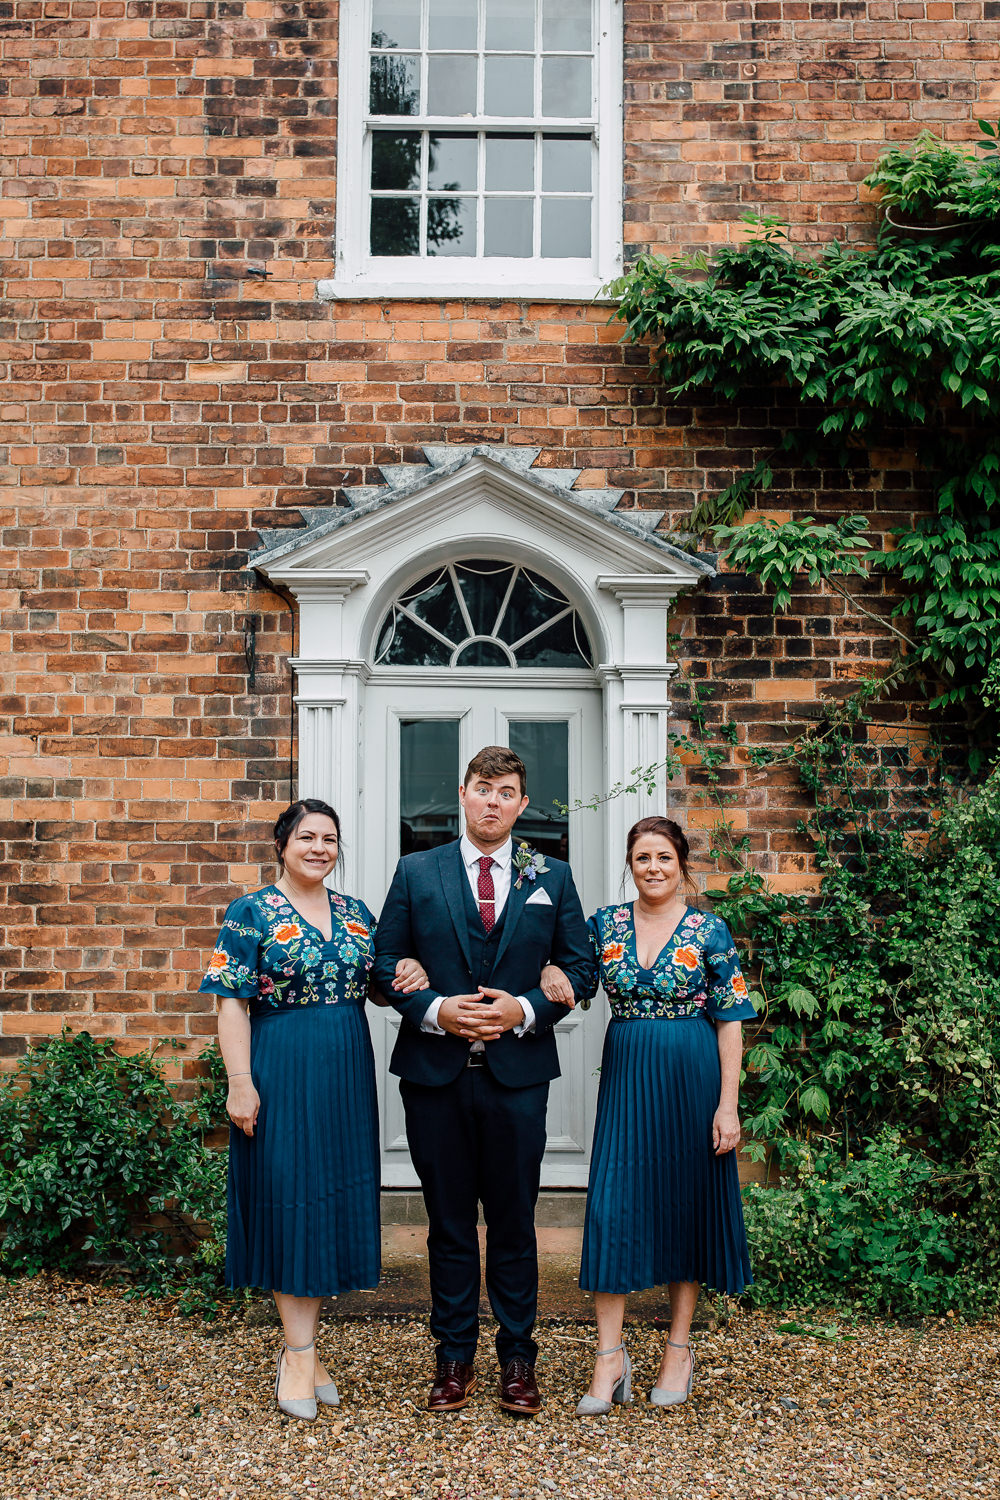 Bridesmaid Bridesmaids Dresses Classic Navy Blue Embroidery Barff Country House Wedding Sarah Beth Photo